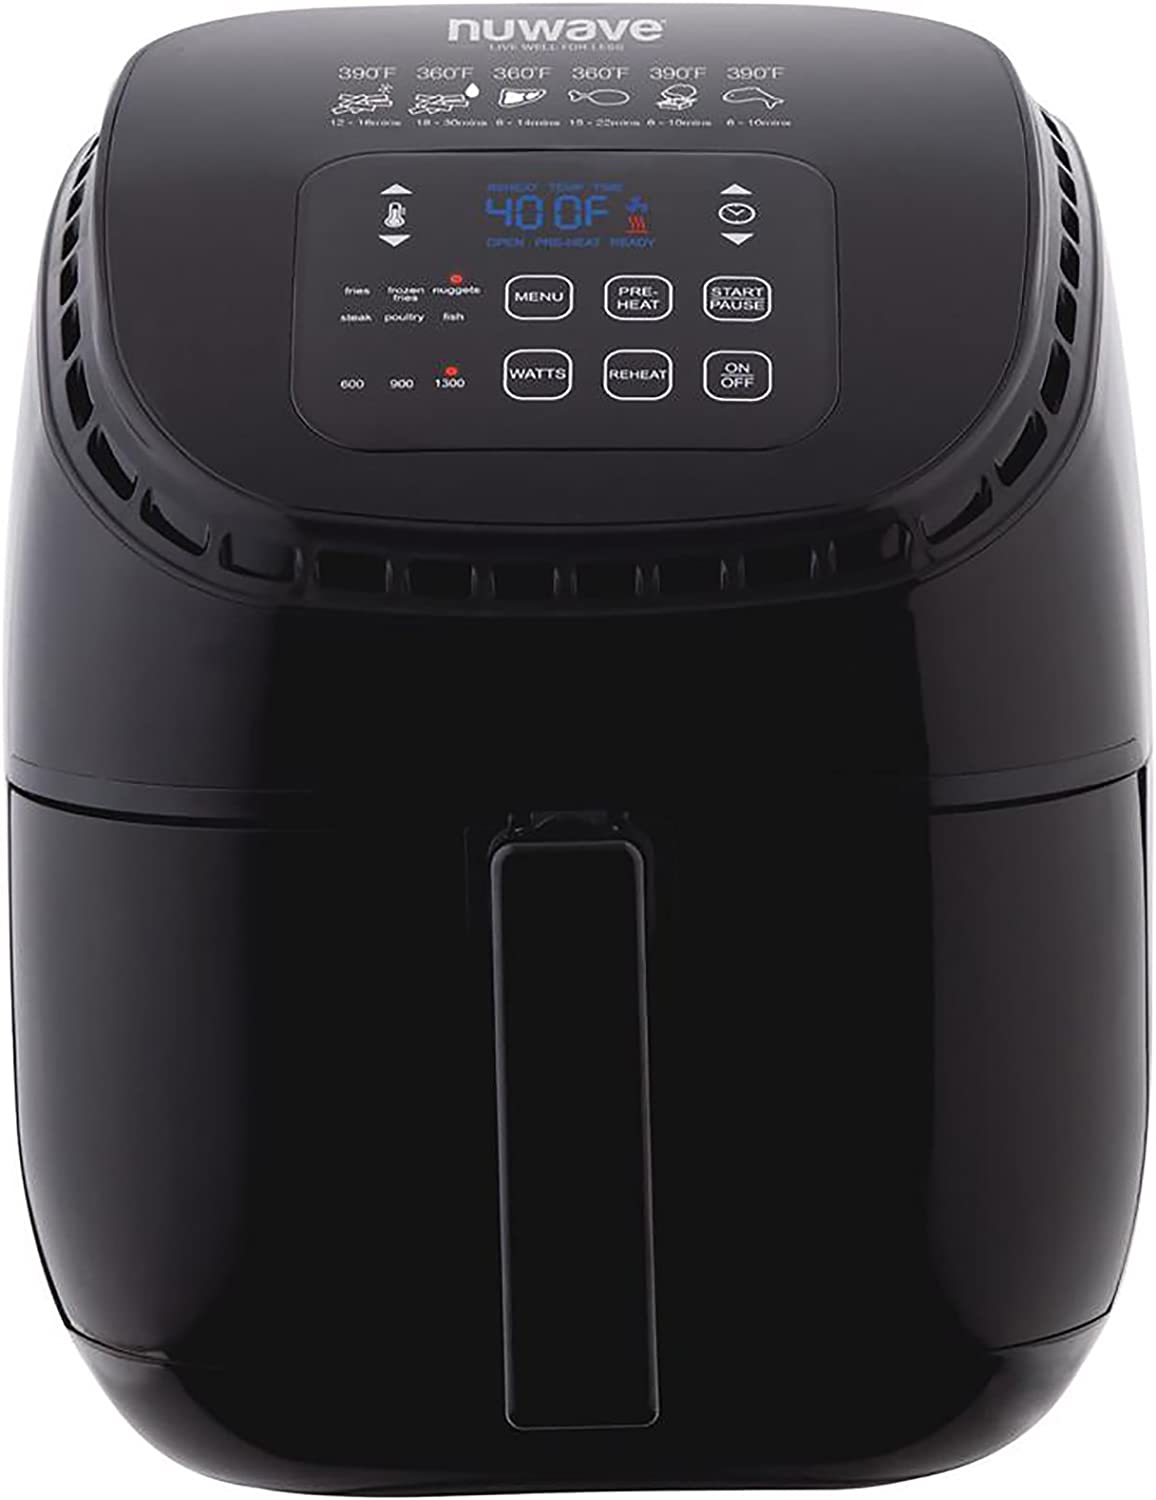 NUWAVE BRIO 3-Quart Digital Air Fryer cooking package with one-touch digital controls, 6 easy presets, precise temperature control, recipe book, wattage control, and advanced functions like PREHEAT and REHEAT